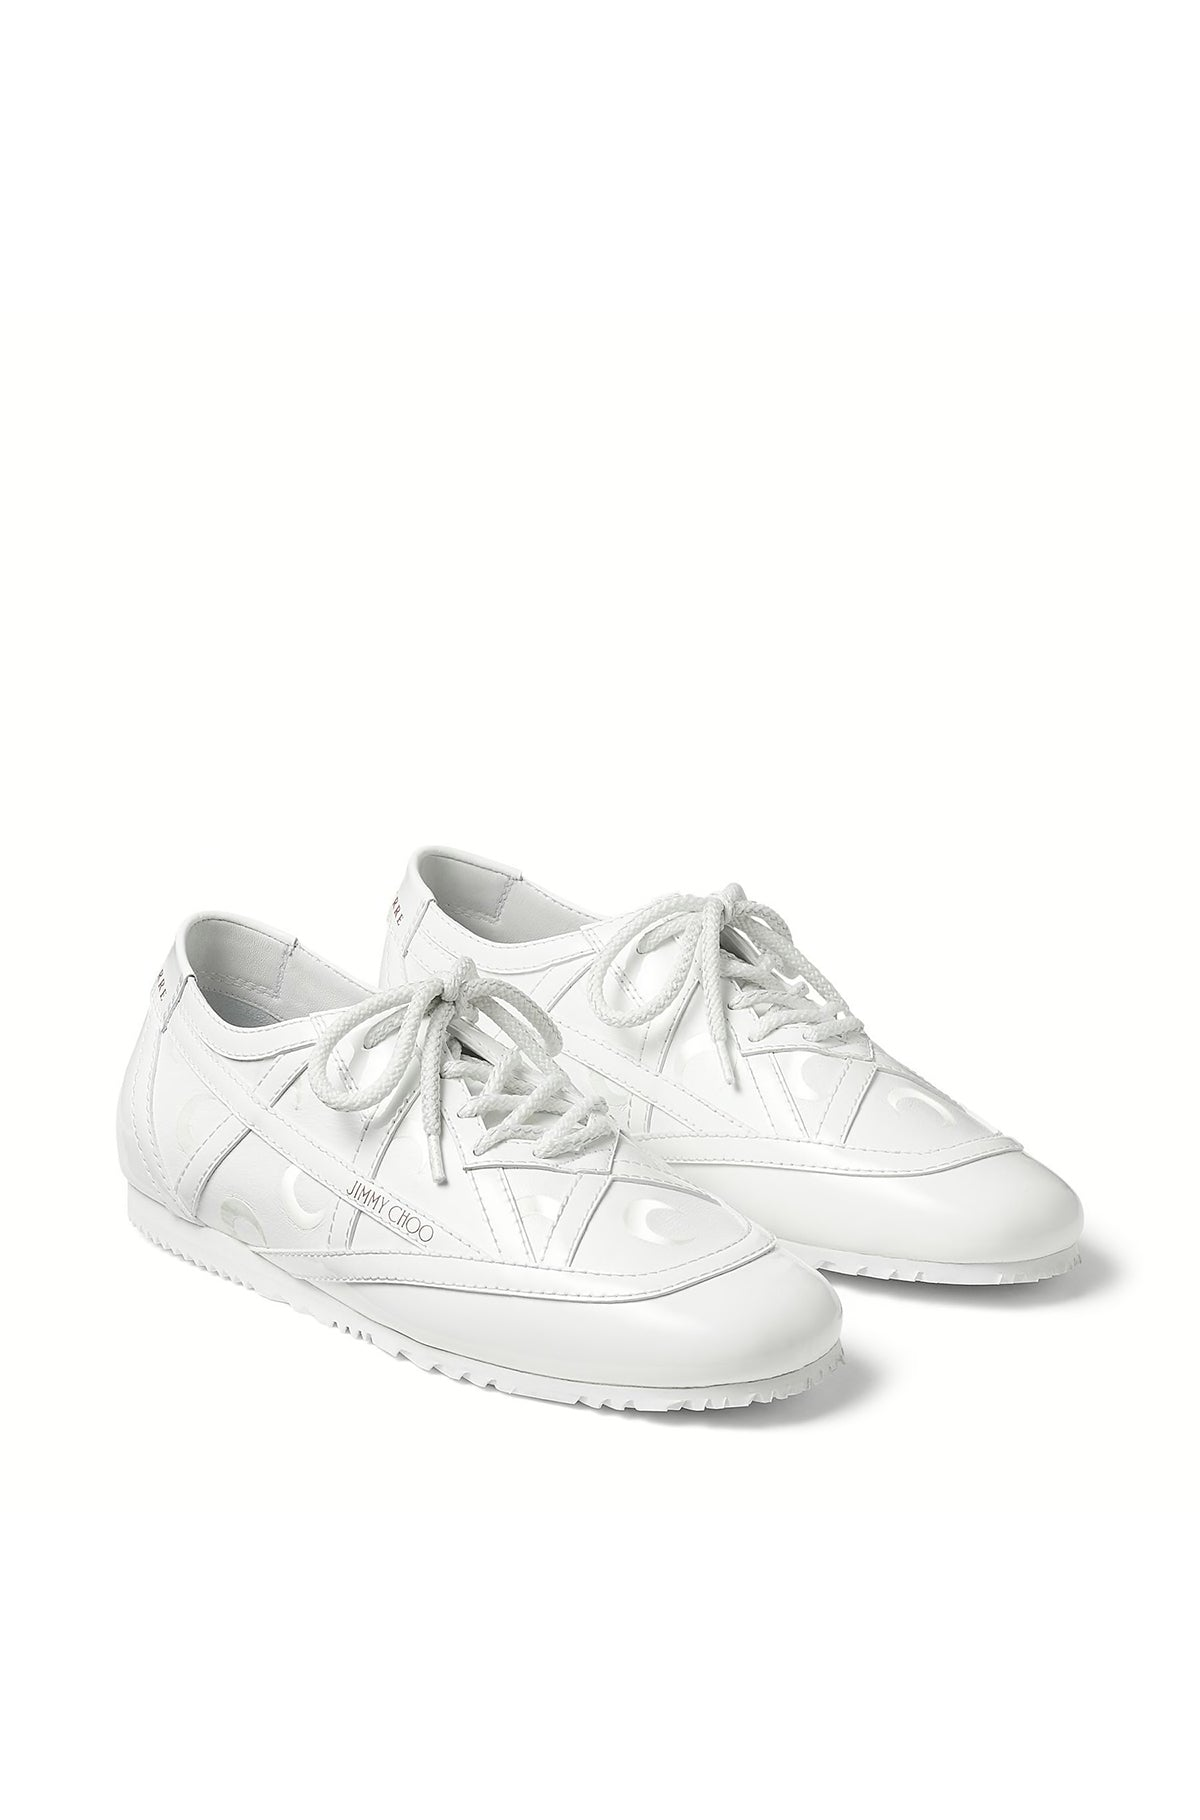 Moon Kato Sneakers White